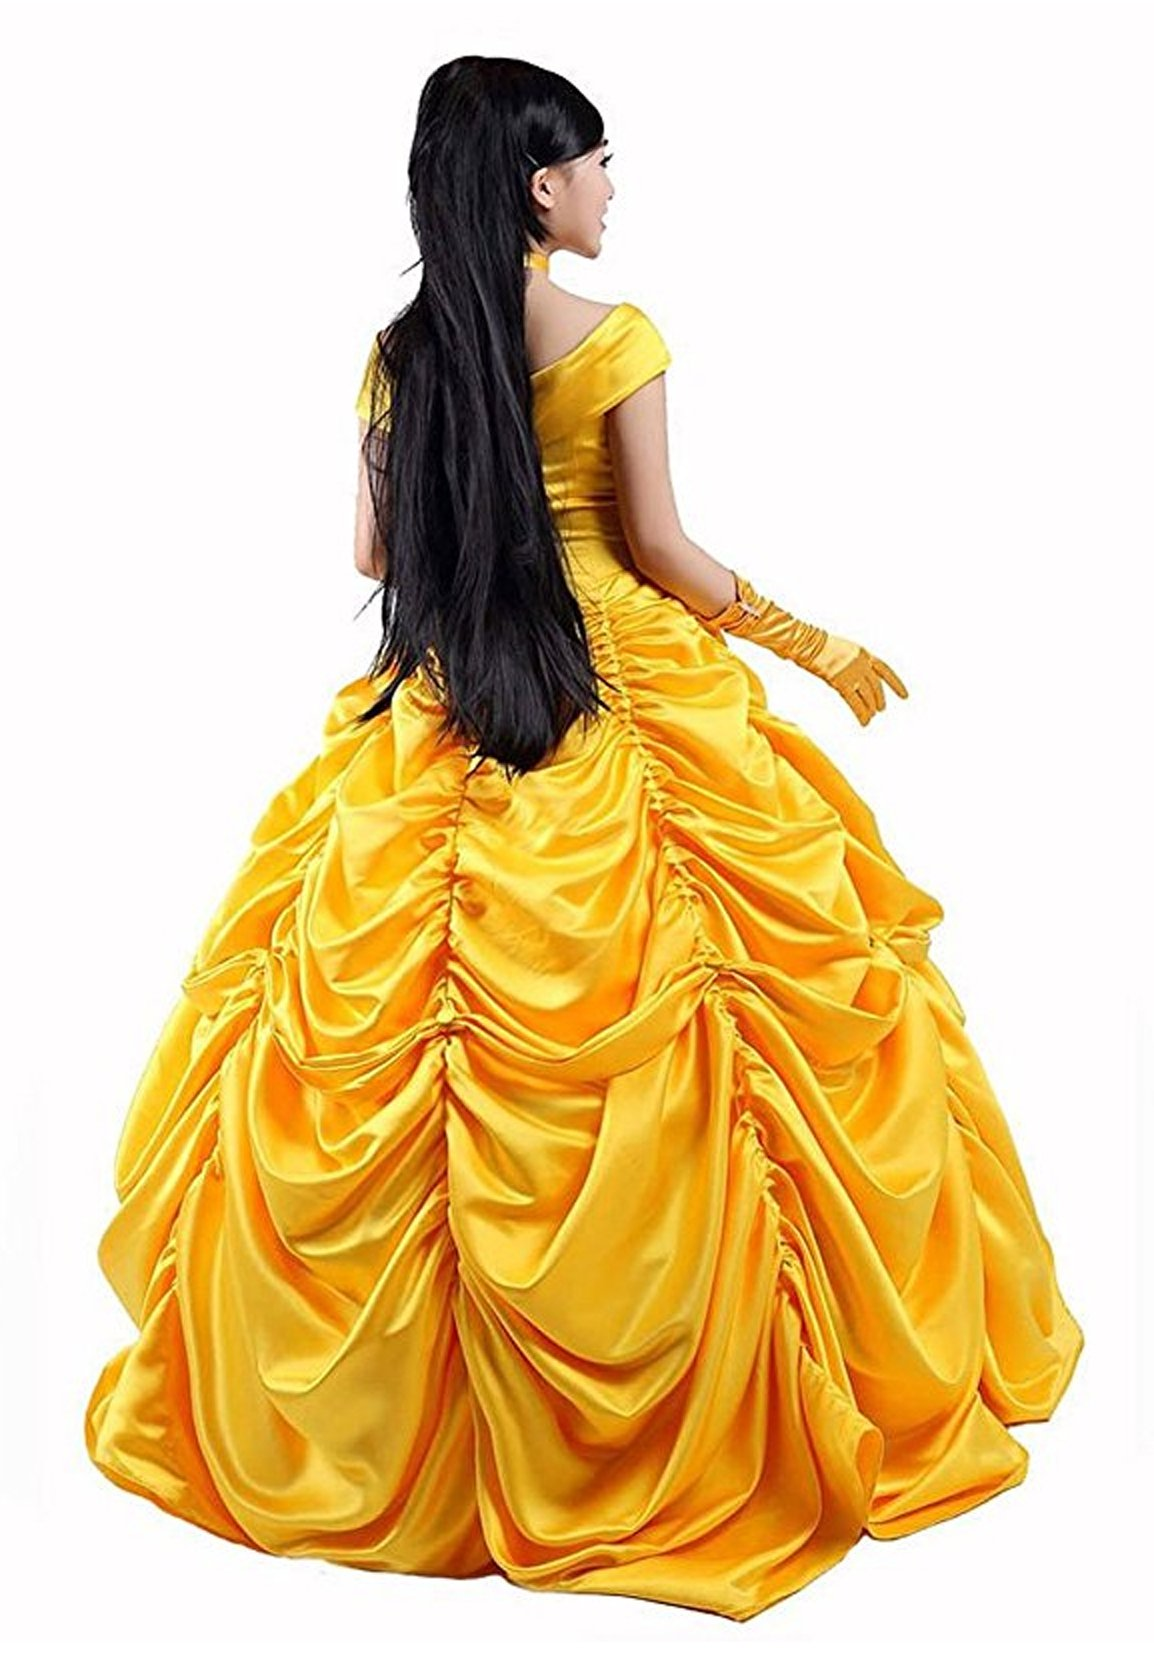 HalloweenCostumeParty Beauty and Beast Belle Costume Dress For Adults Woman (L) by HalloweenCostumeParty (Image #6)